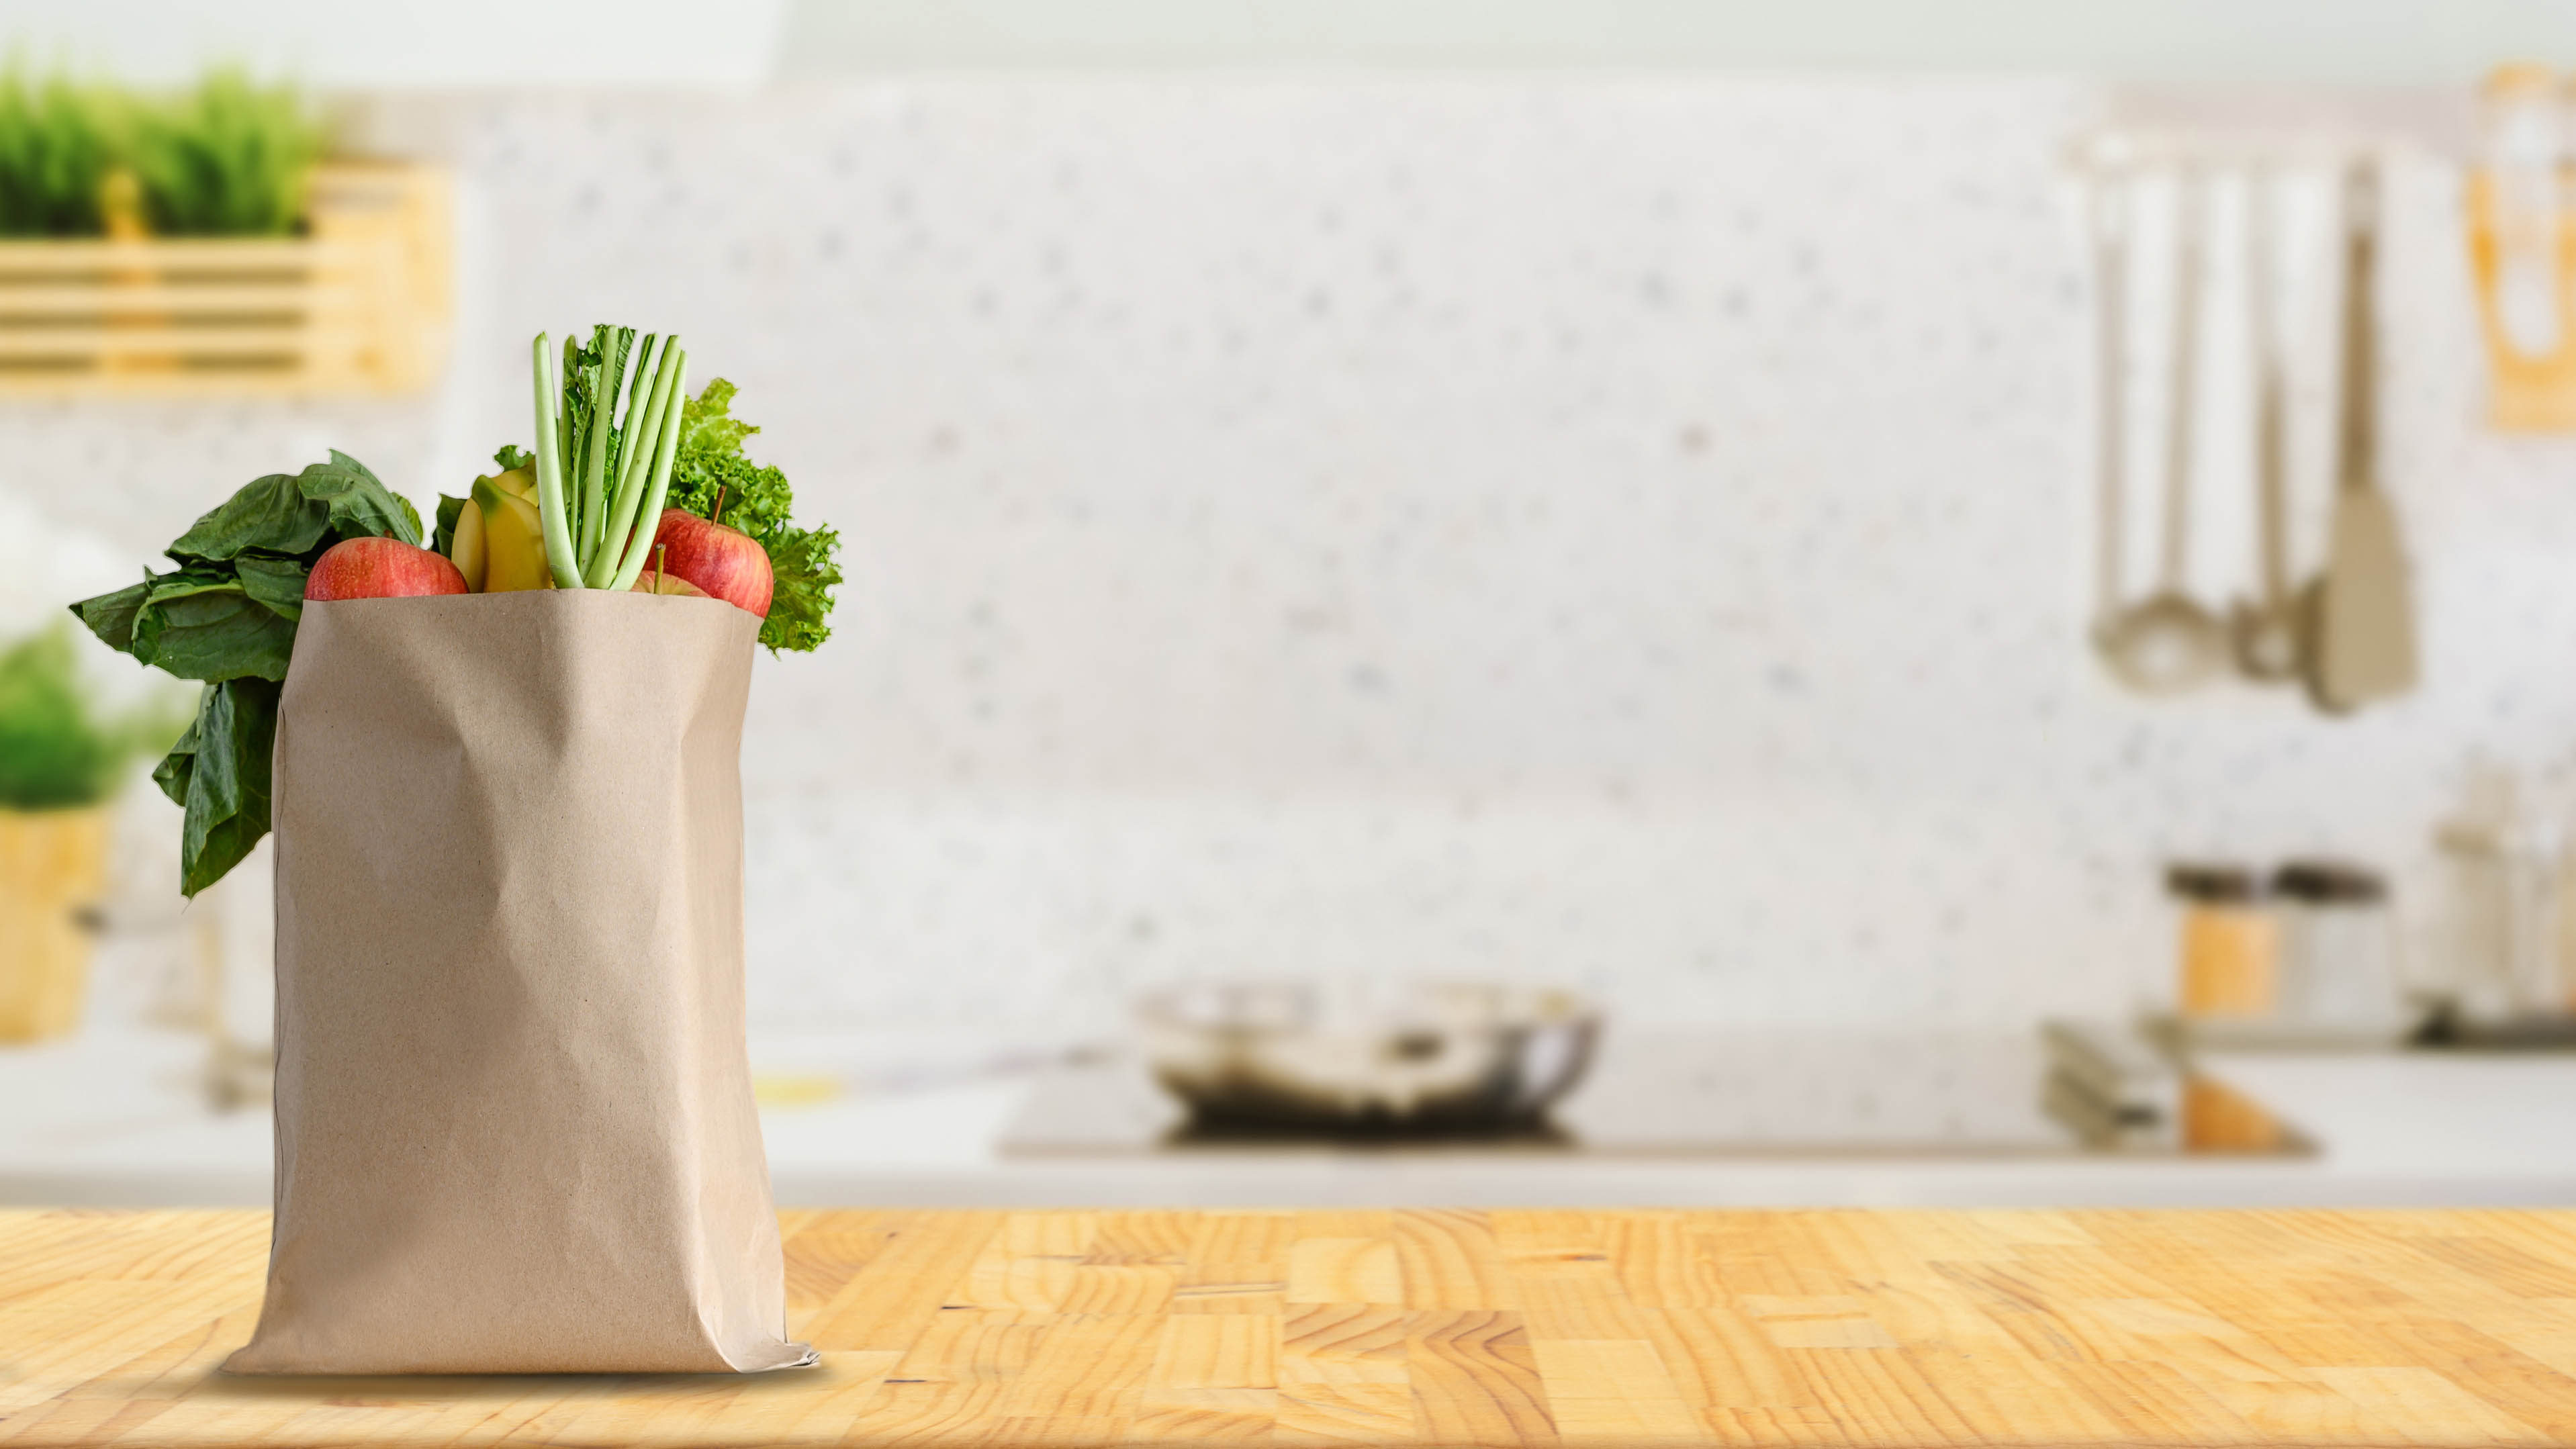 Paper shopping bag full of fruit and vegetable groceries on a kitchen counter